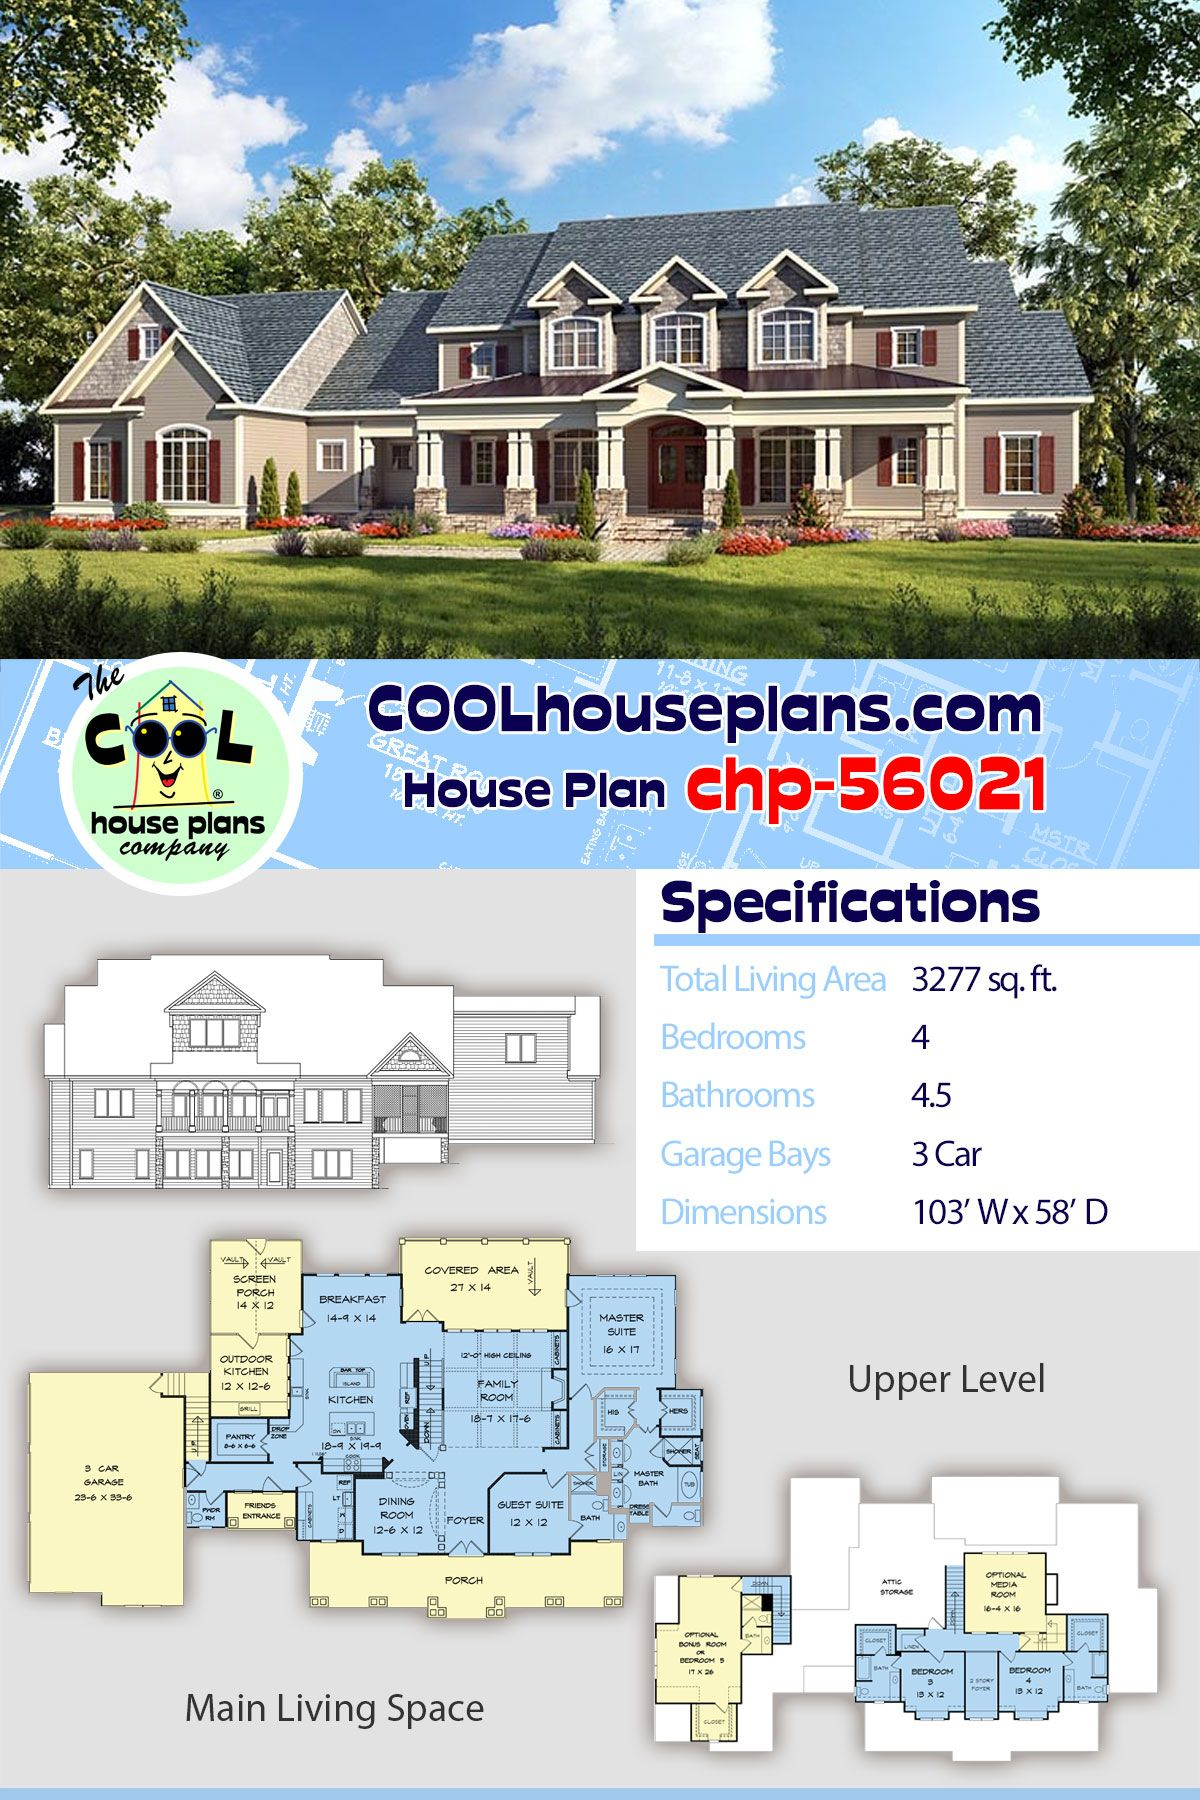 House Plan Chp 56021 House Plans Home Design Floor Plans Country House Plan